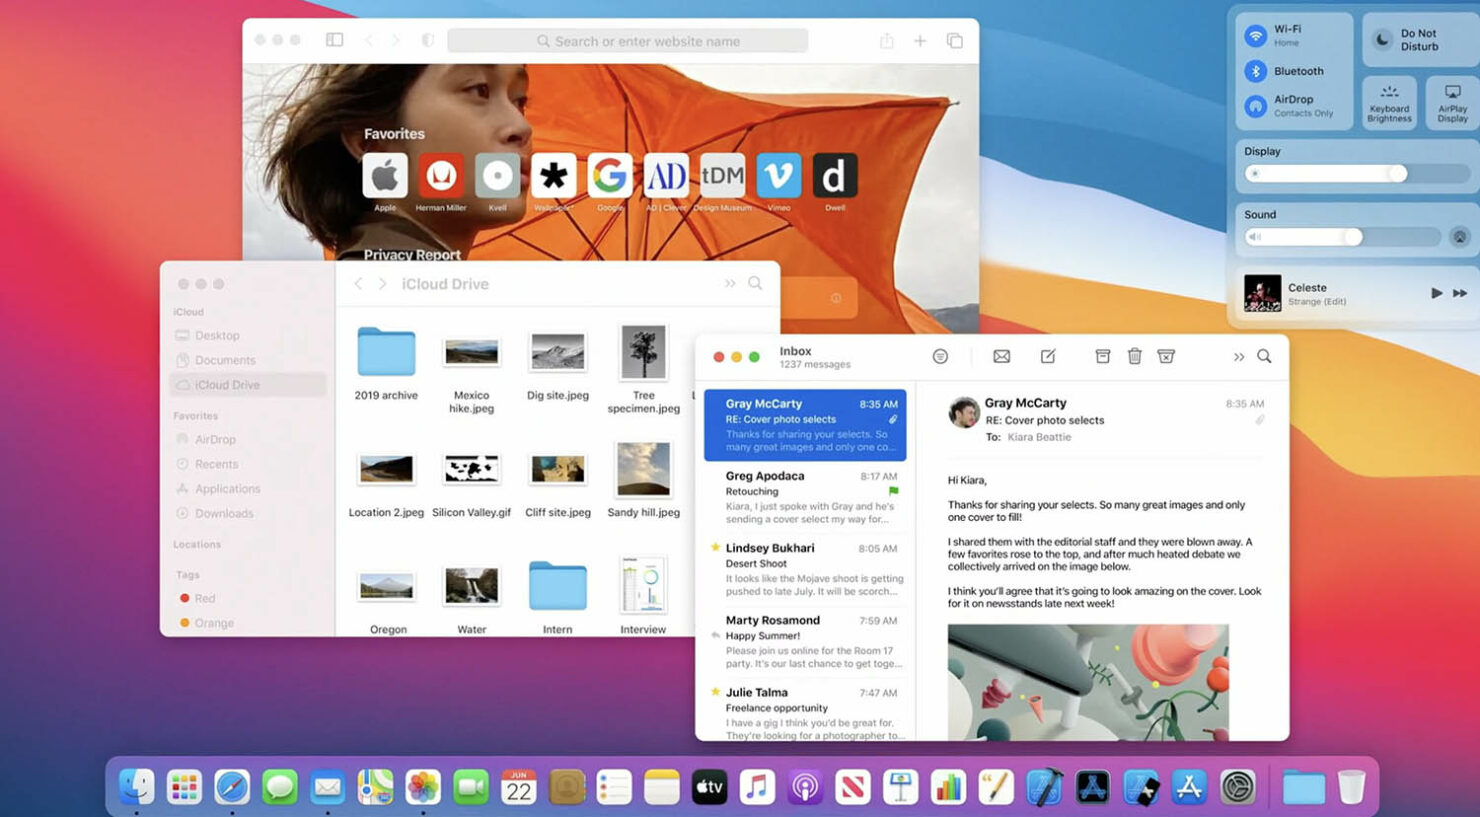 macOS Big Sur Official - New Dock Designs, Updated Widgets, Fresh Control Center and an Aesthetically Upgraded UI for Apps